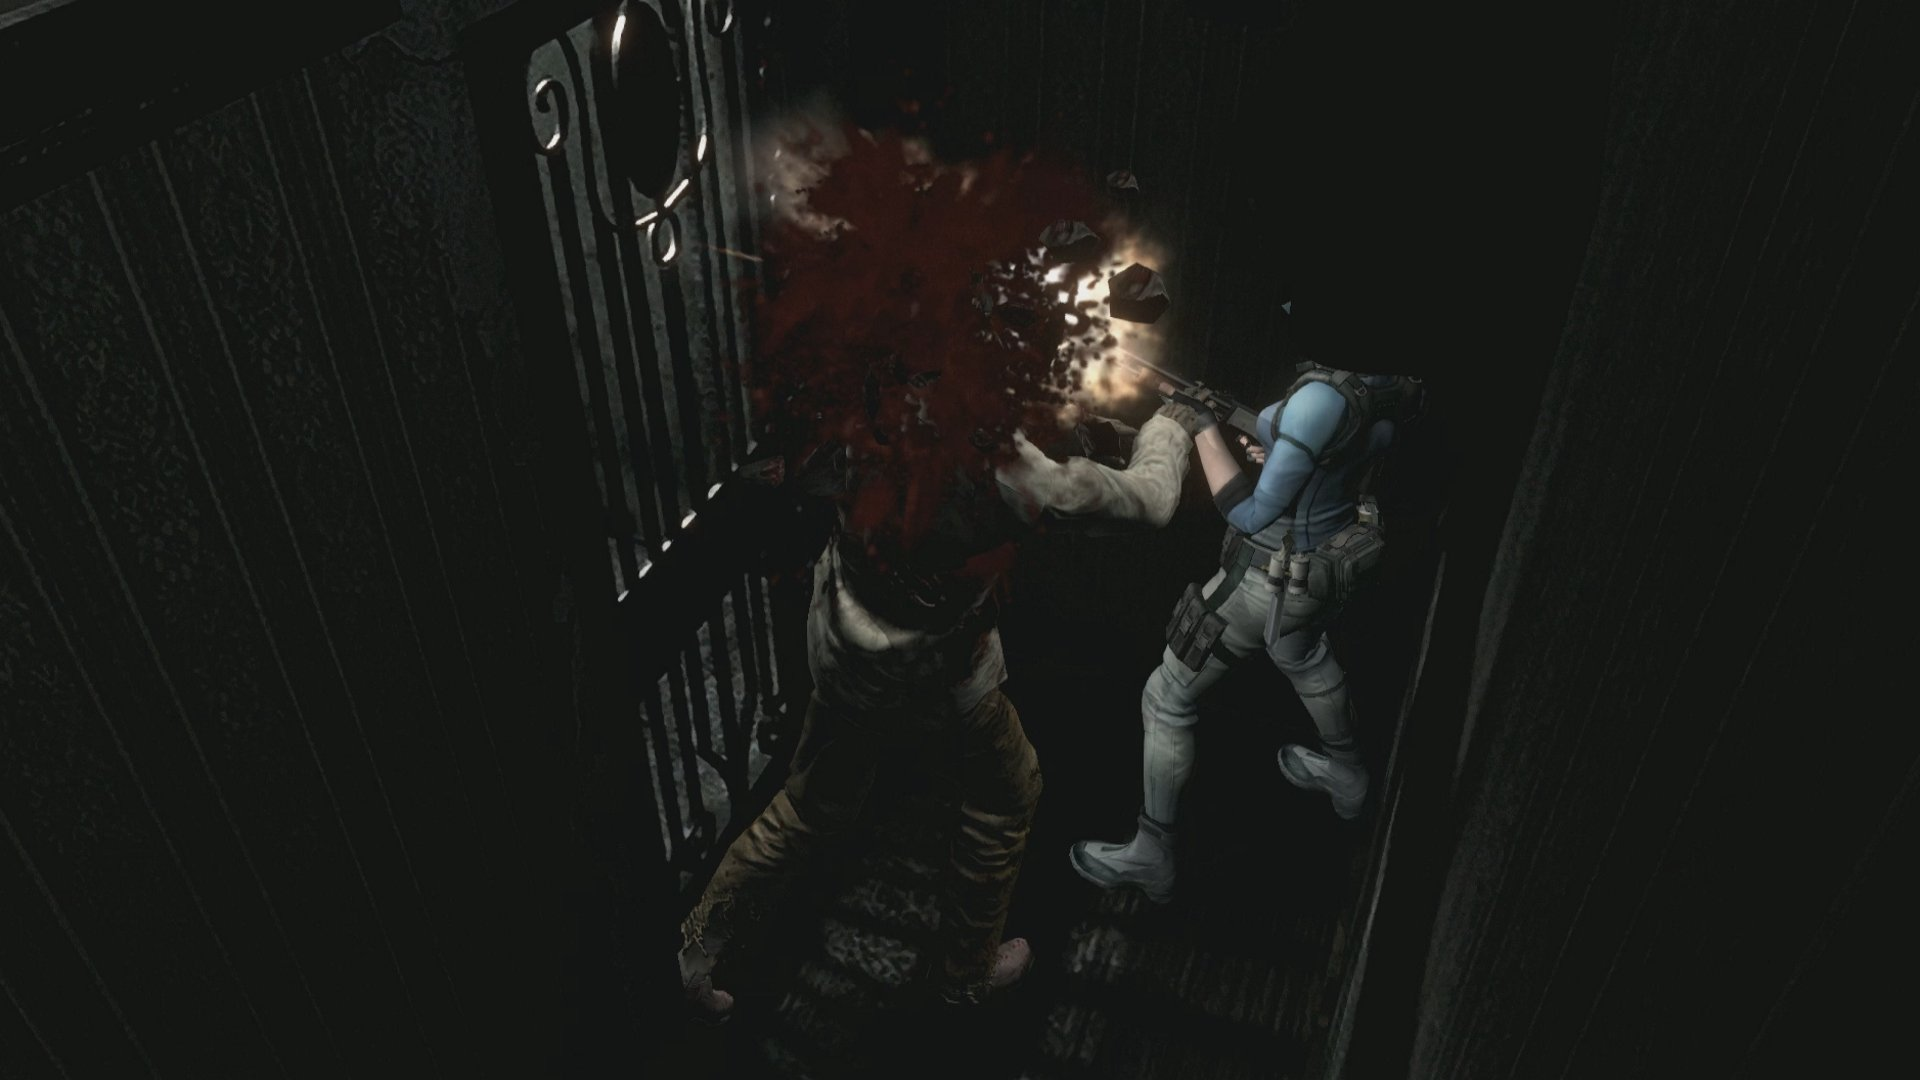 How to decapitate and critical hit in Resident Evil HD Remaster